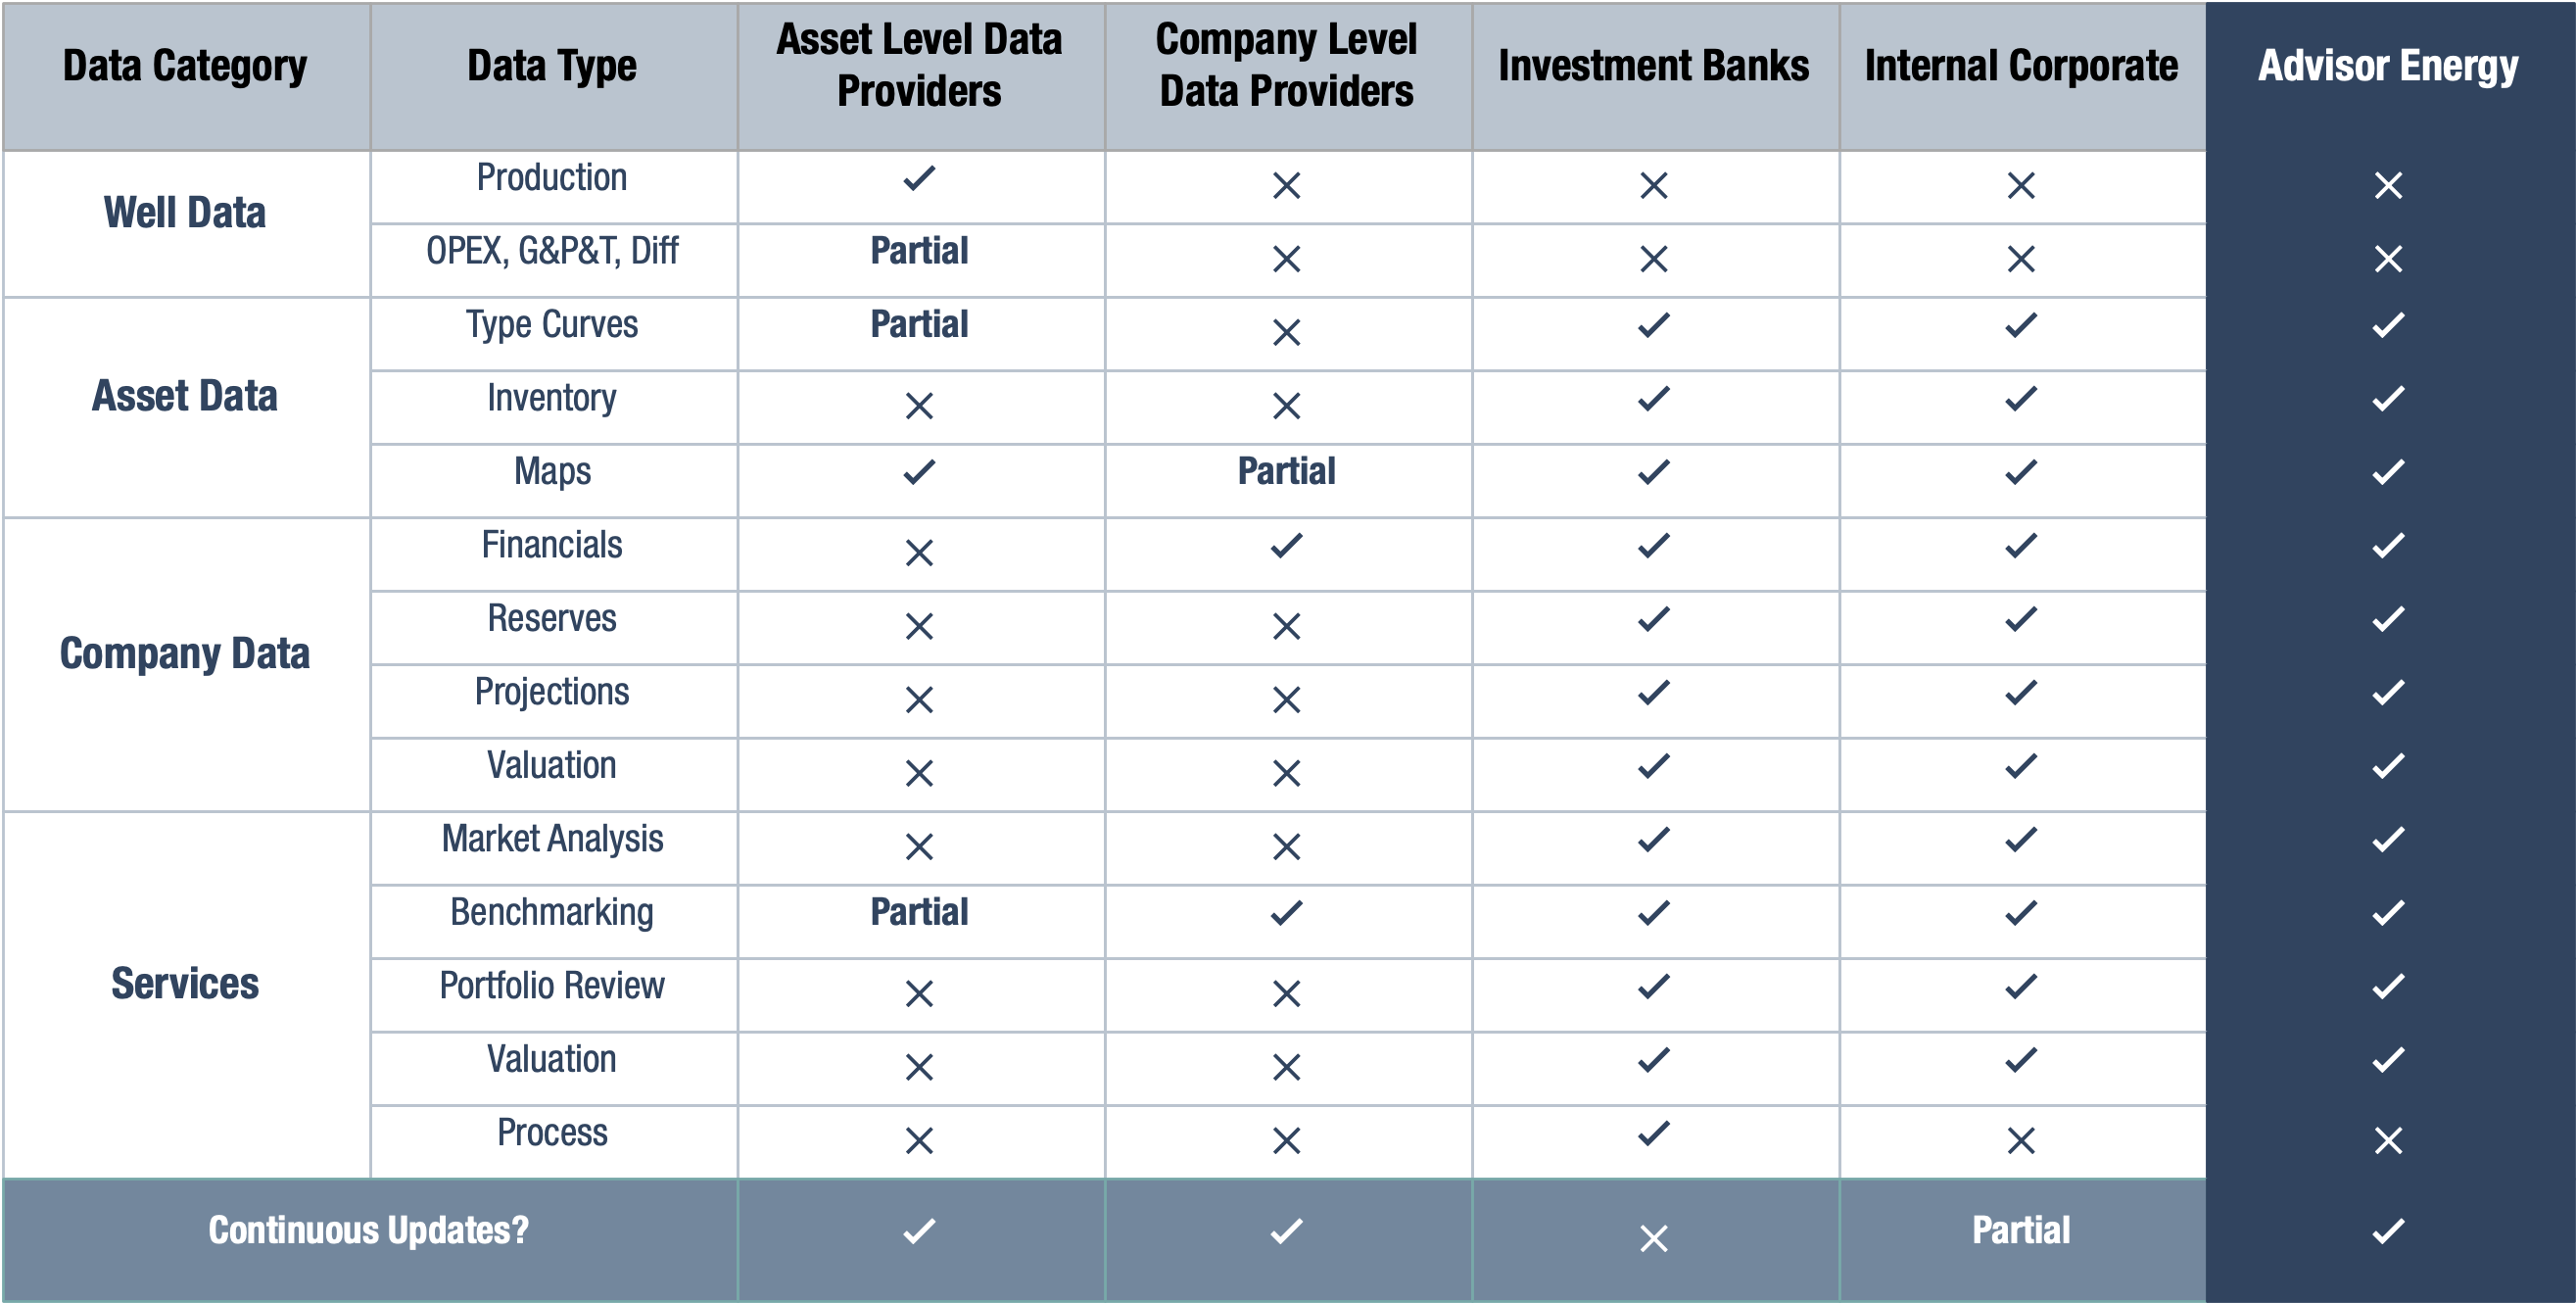 A table comparing available data between Advisor Energy and others